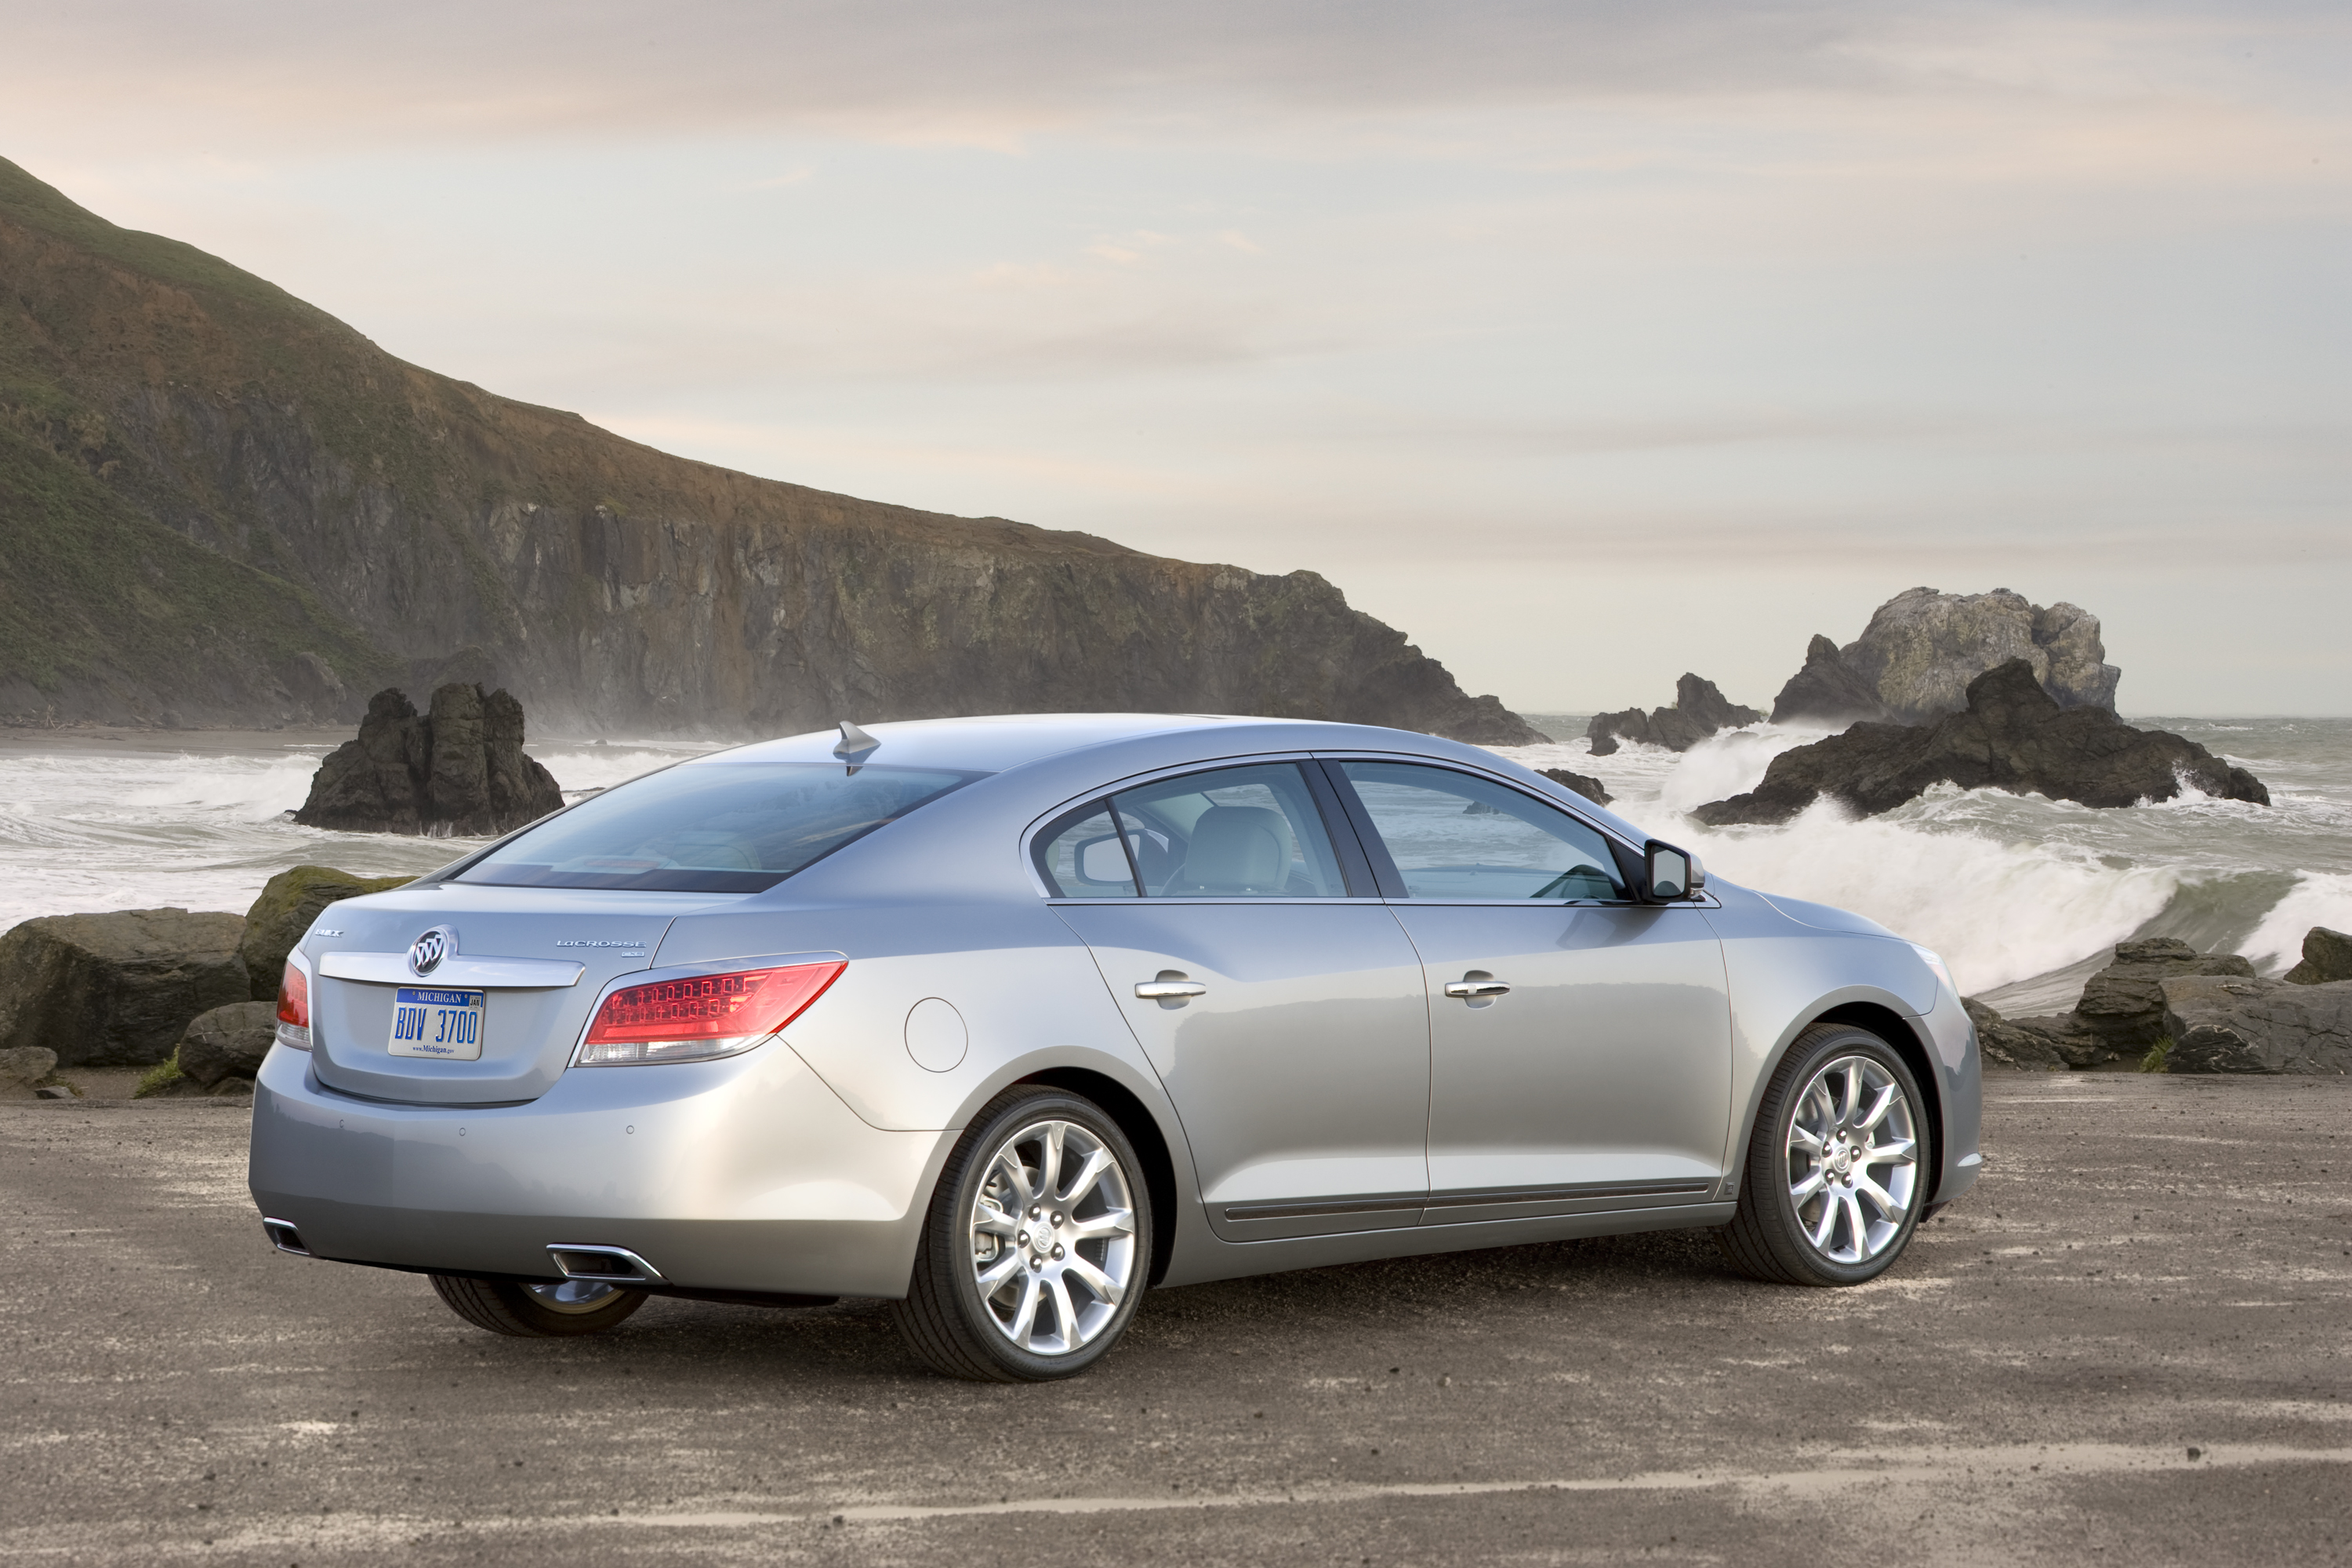 2010 Buick LaCrosse CXS. X10BU_LC032 (United States)